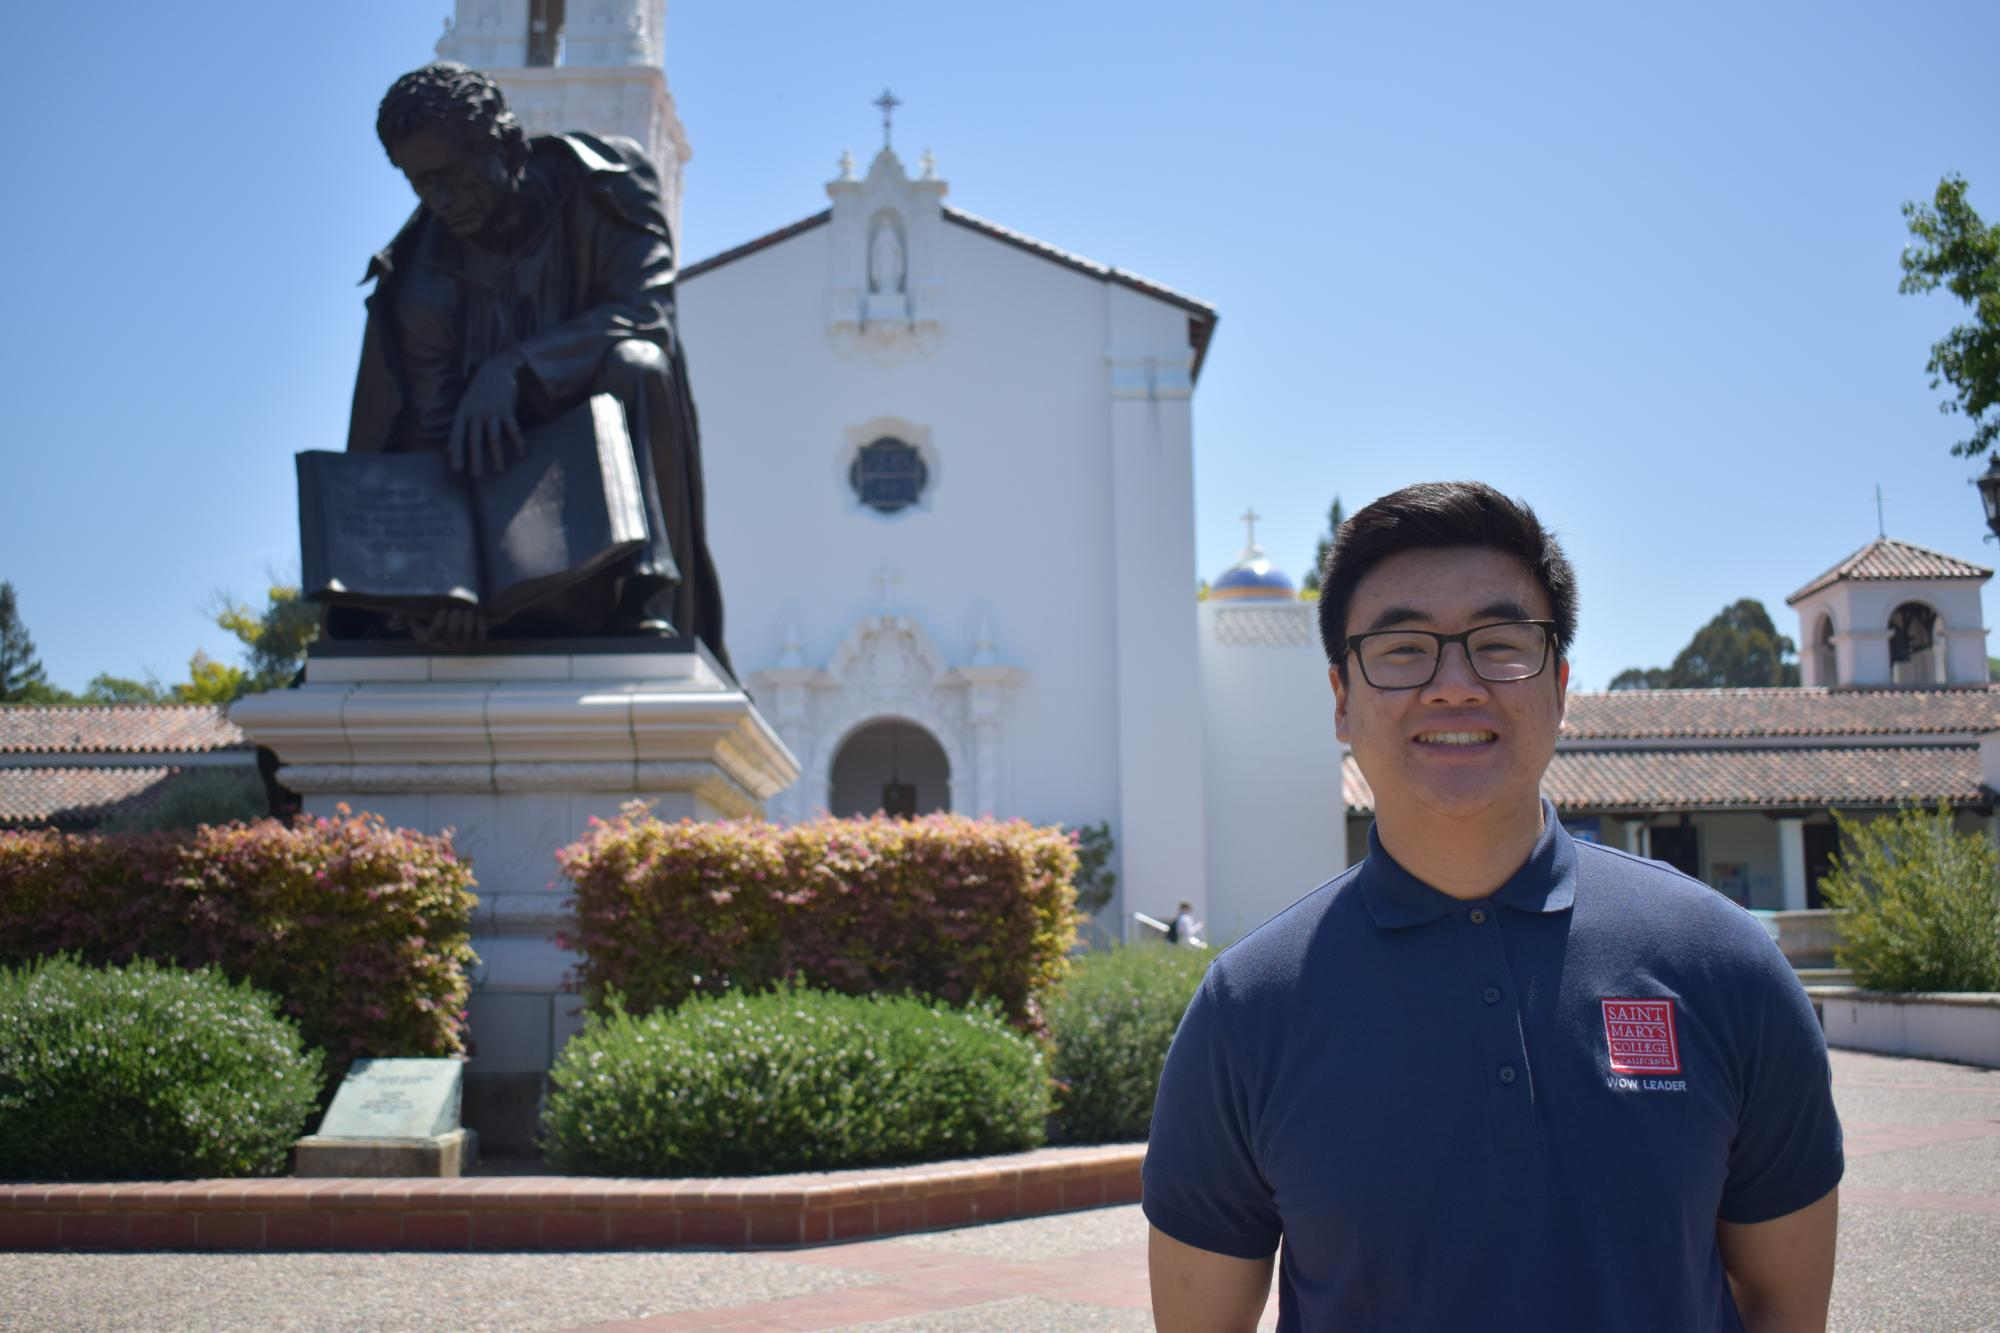 Howdy, my name is Bonaventure from El Dorado Hills, CA. I'm studying Biochemistry. In addition to being an Orientation Leader, I am also involved with the Honors Program at Saint Mary's. I look forward to seeing your faces at Orientation!